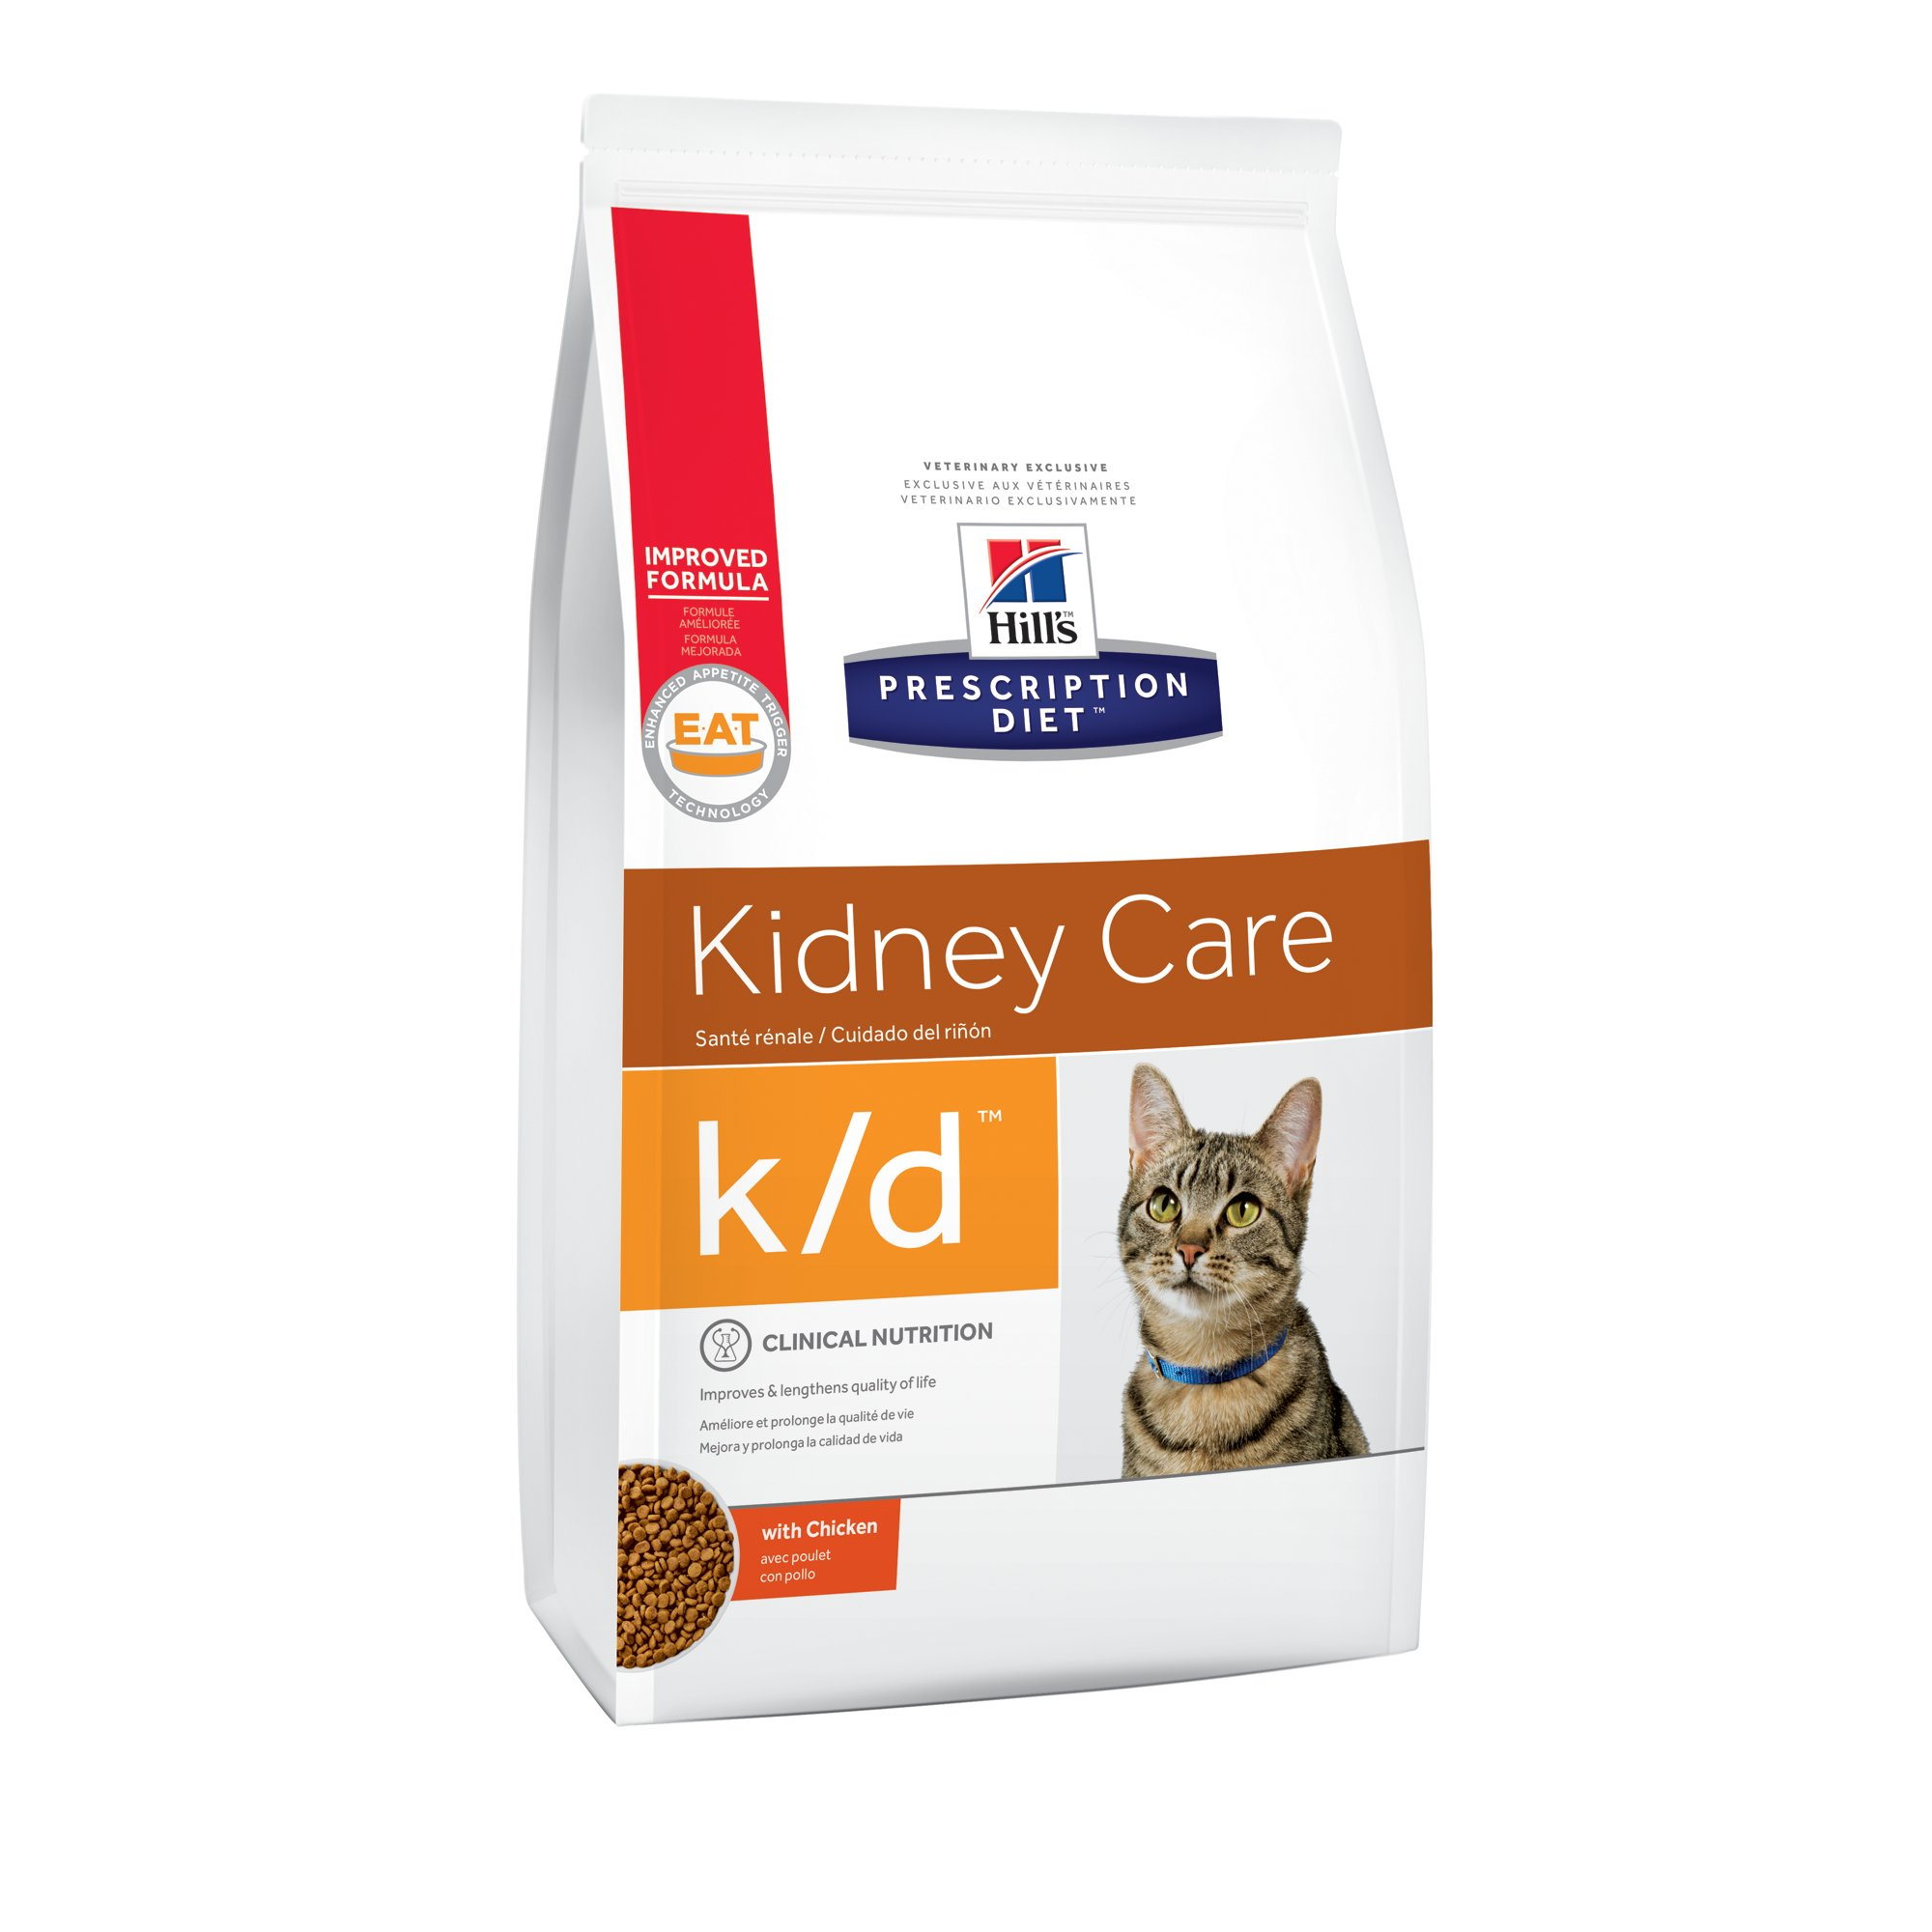 Hill's Prescription Diet k/d Kidney Care with Chicken Dry